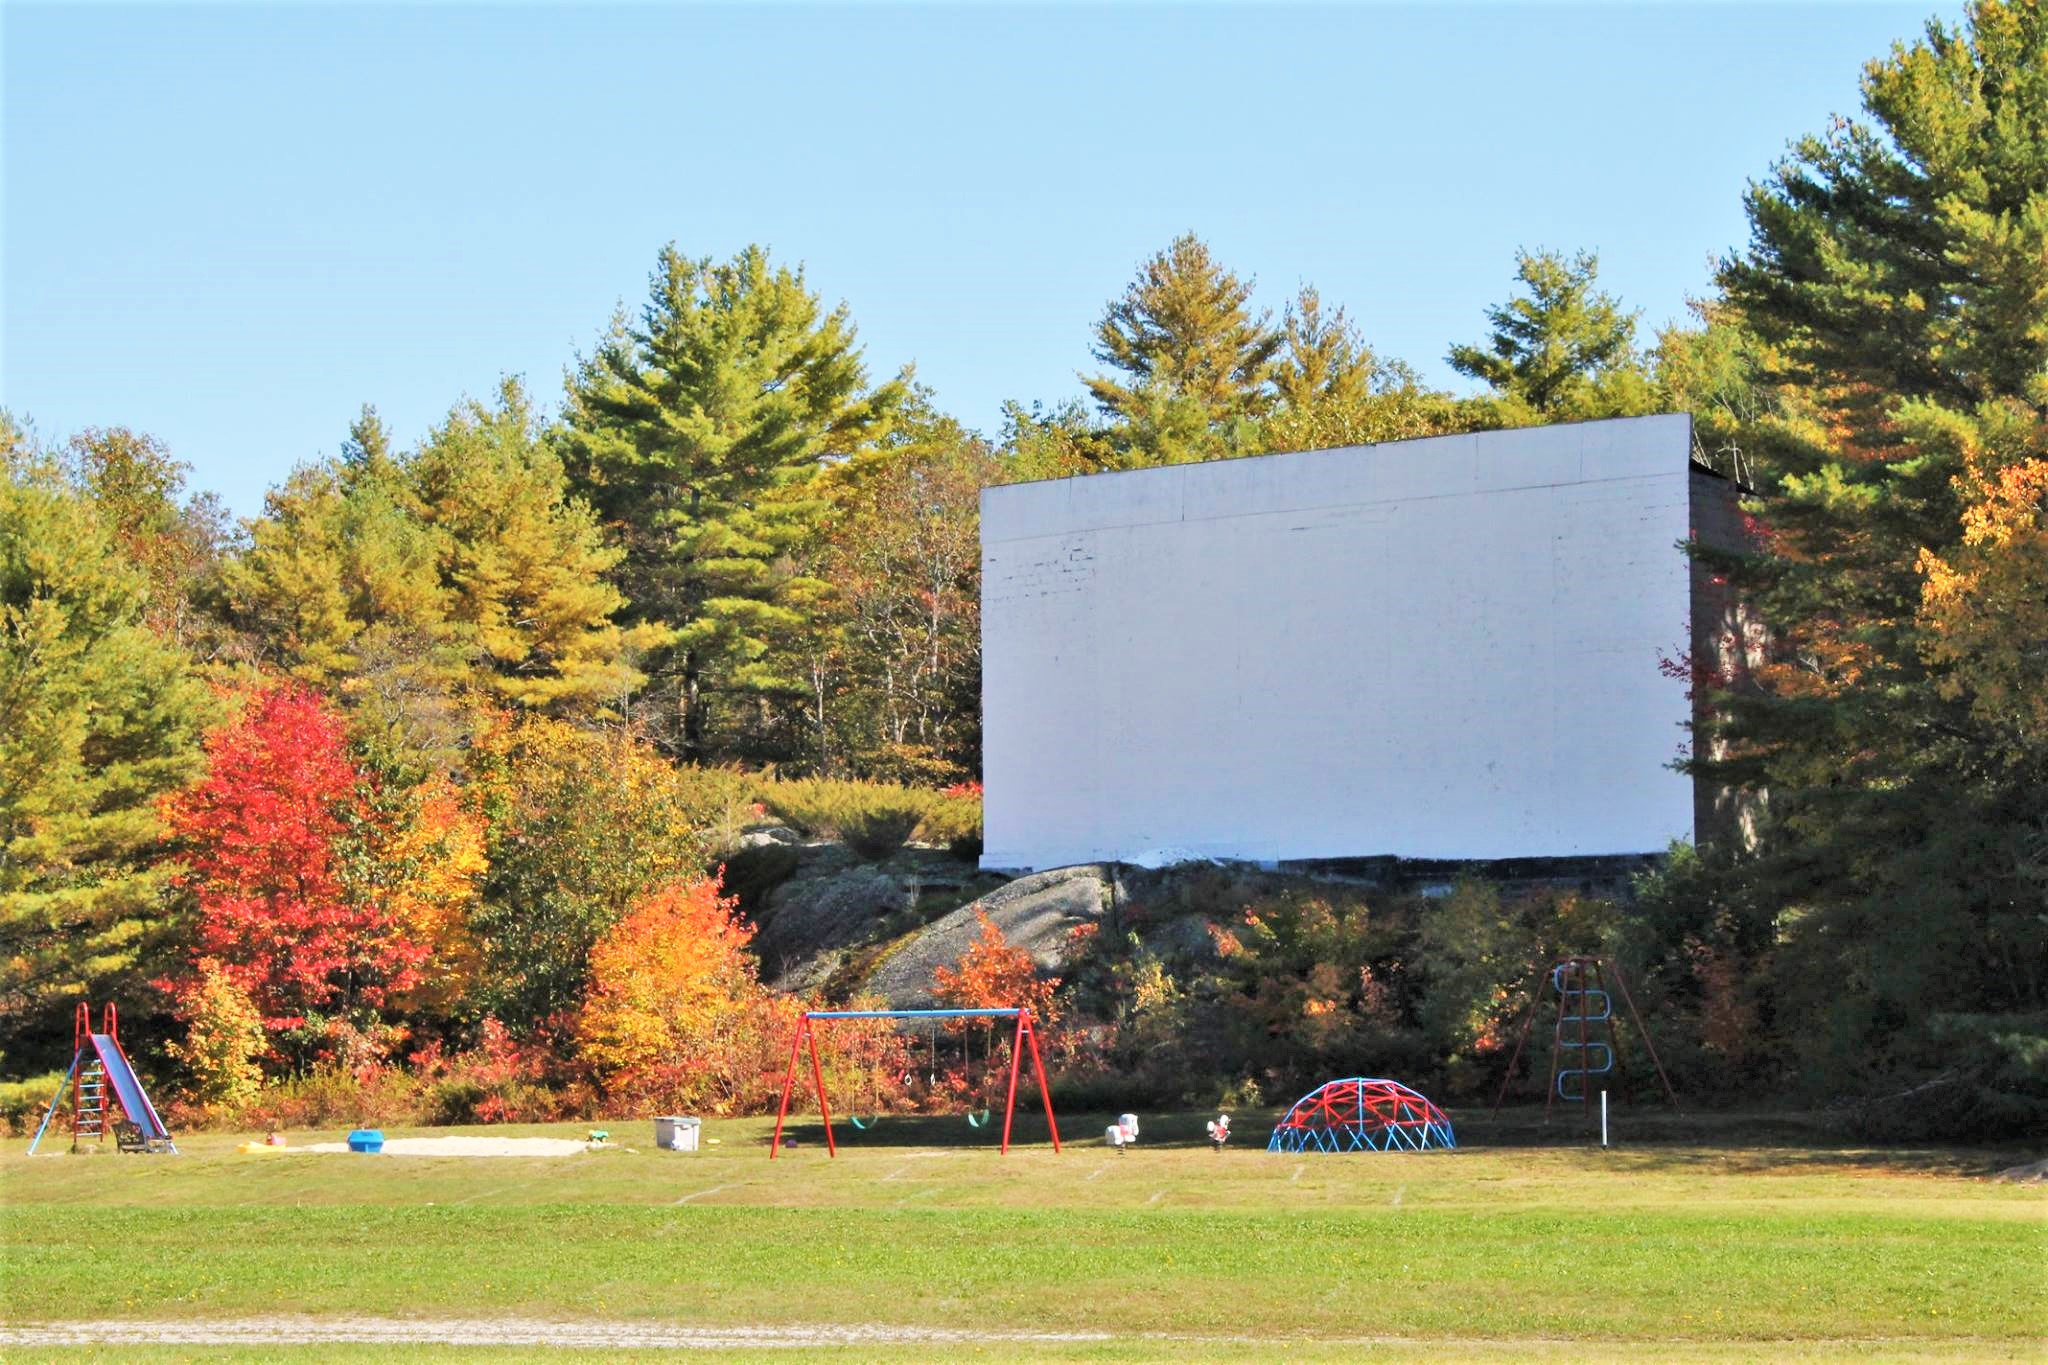 #MBWShoutOuts Week 17: The Muskoka Drive-In Theatre